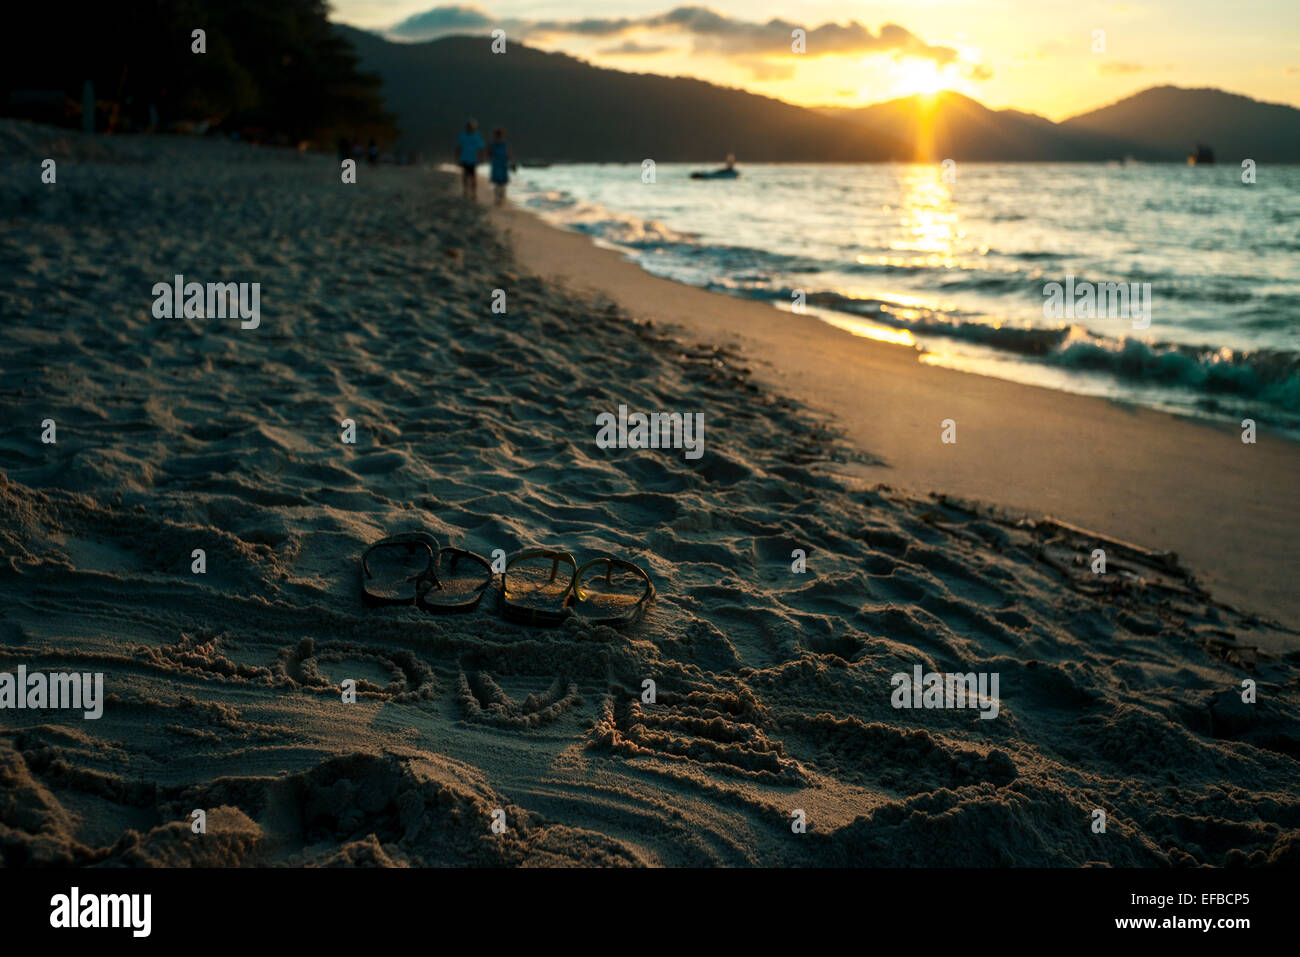 Sand writing of the word LOVE with sandals at seaside during sunset - Stock Image